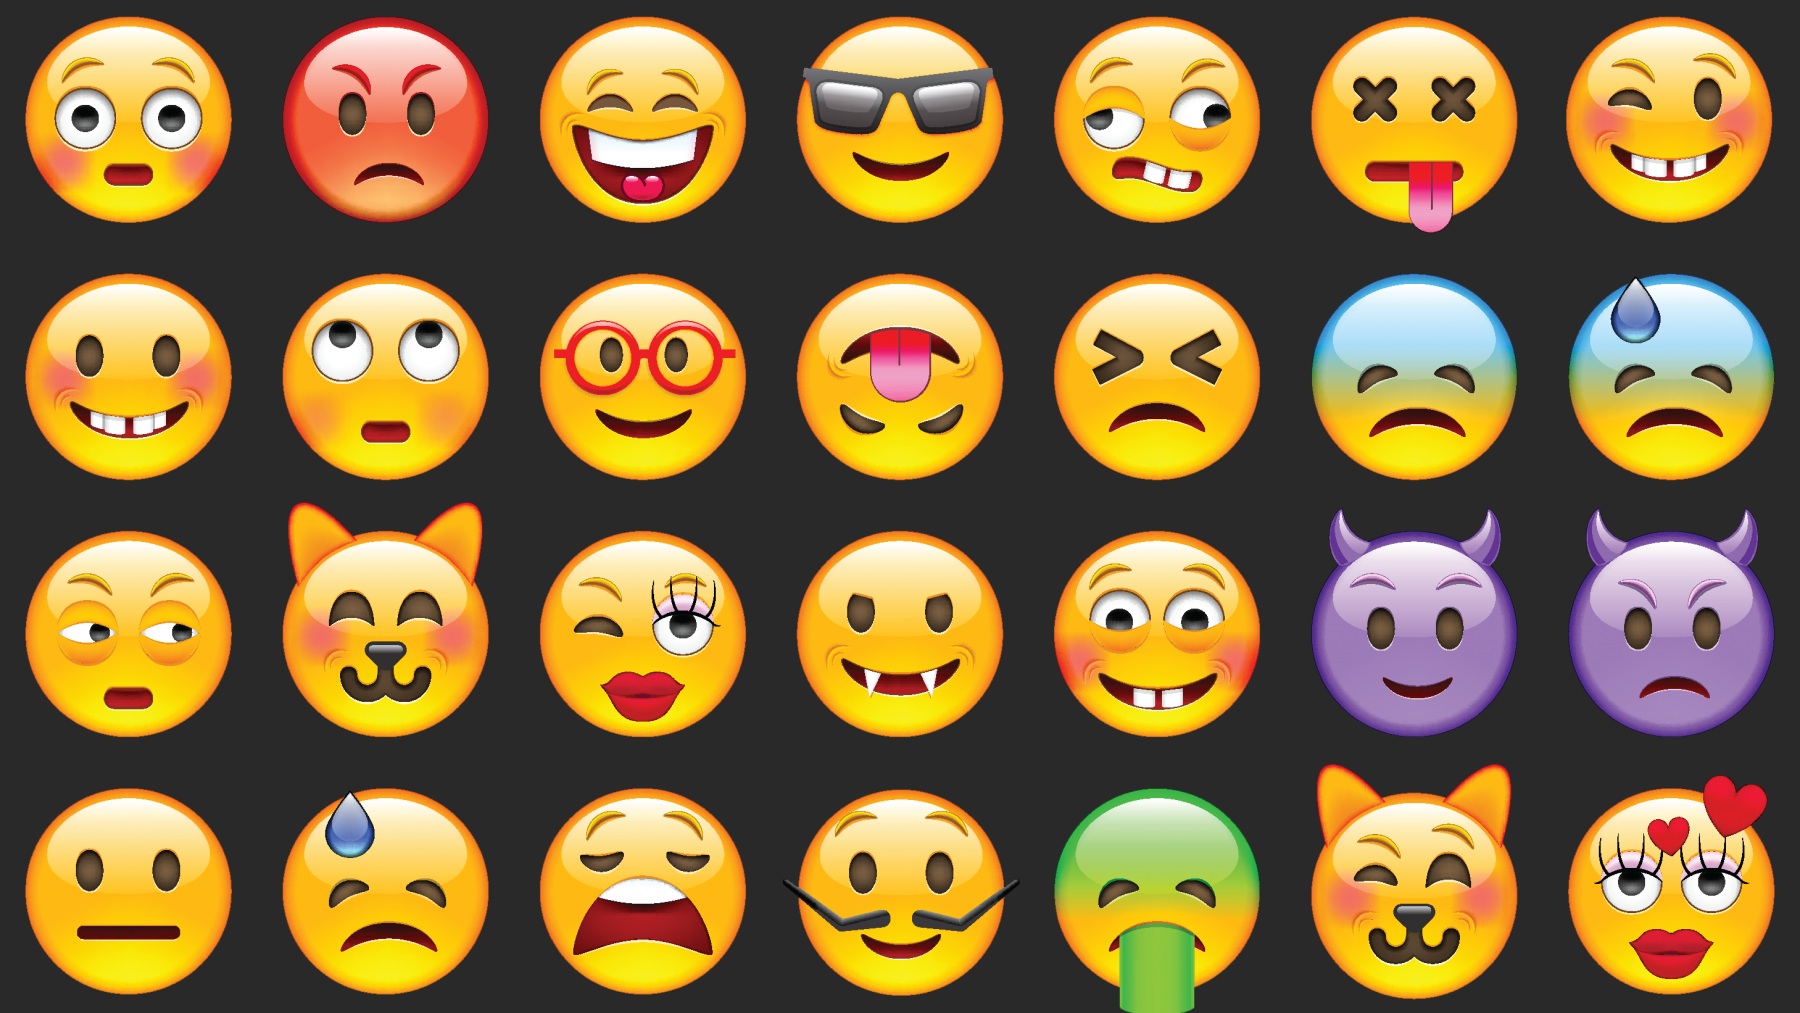 Emojis drawing creative. The art science of